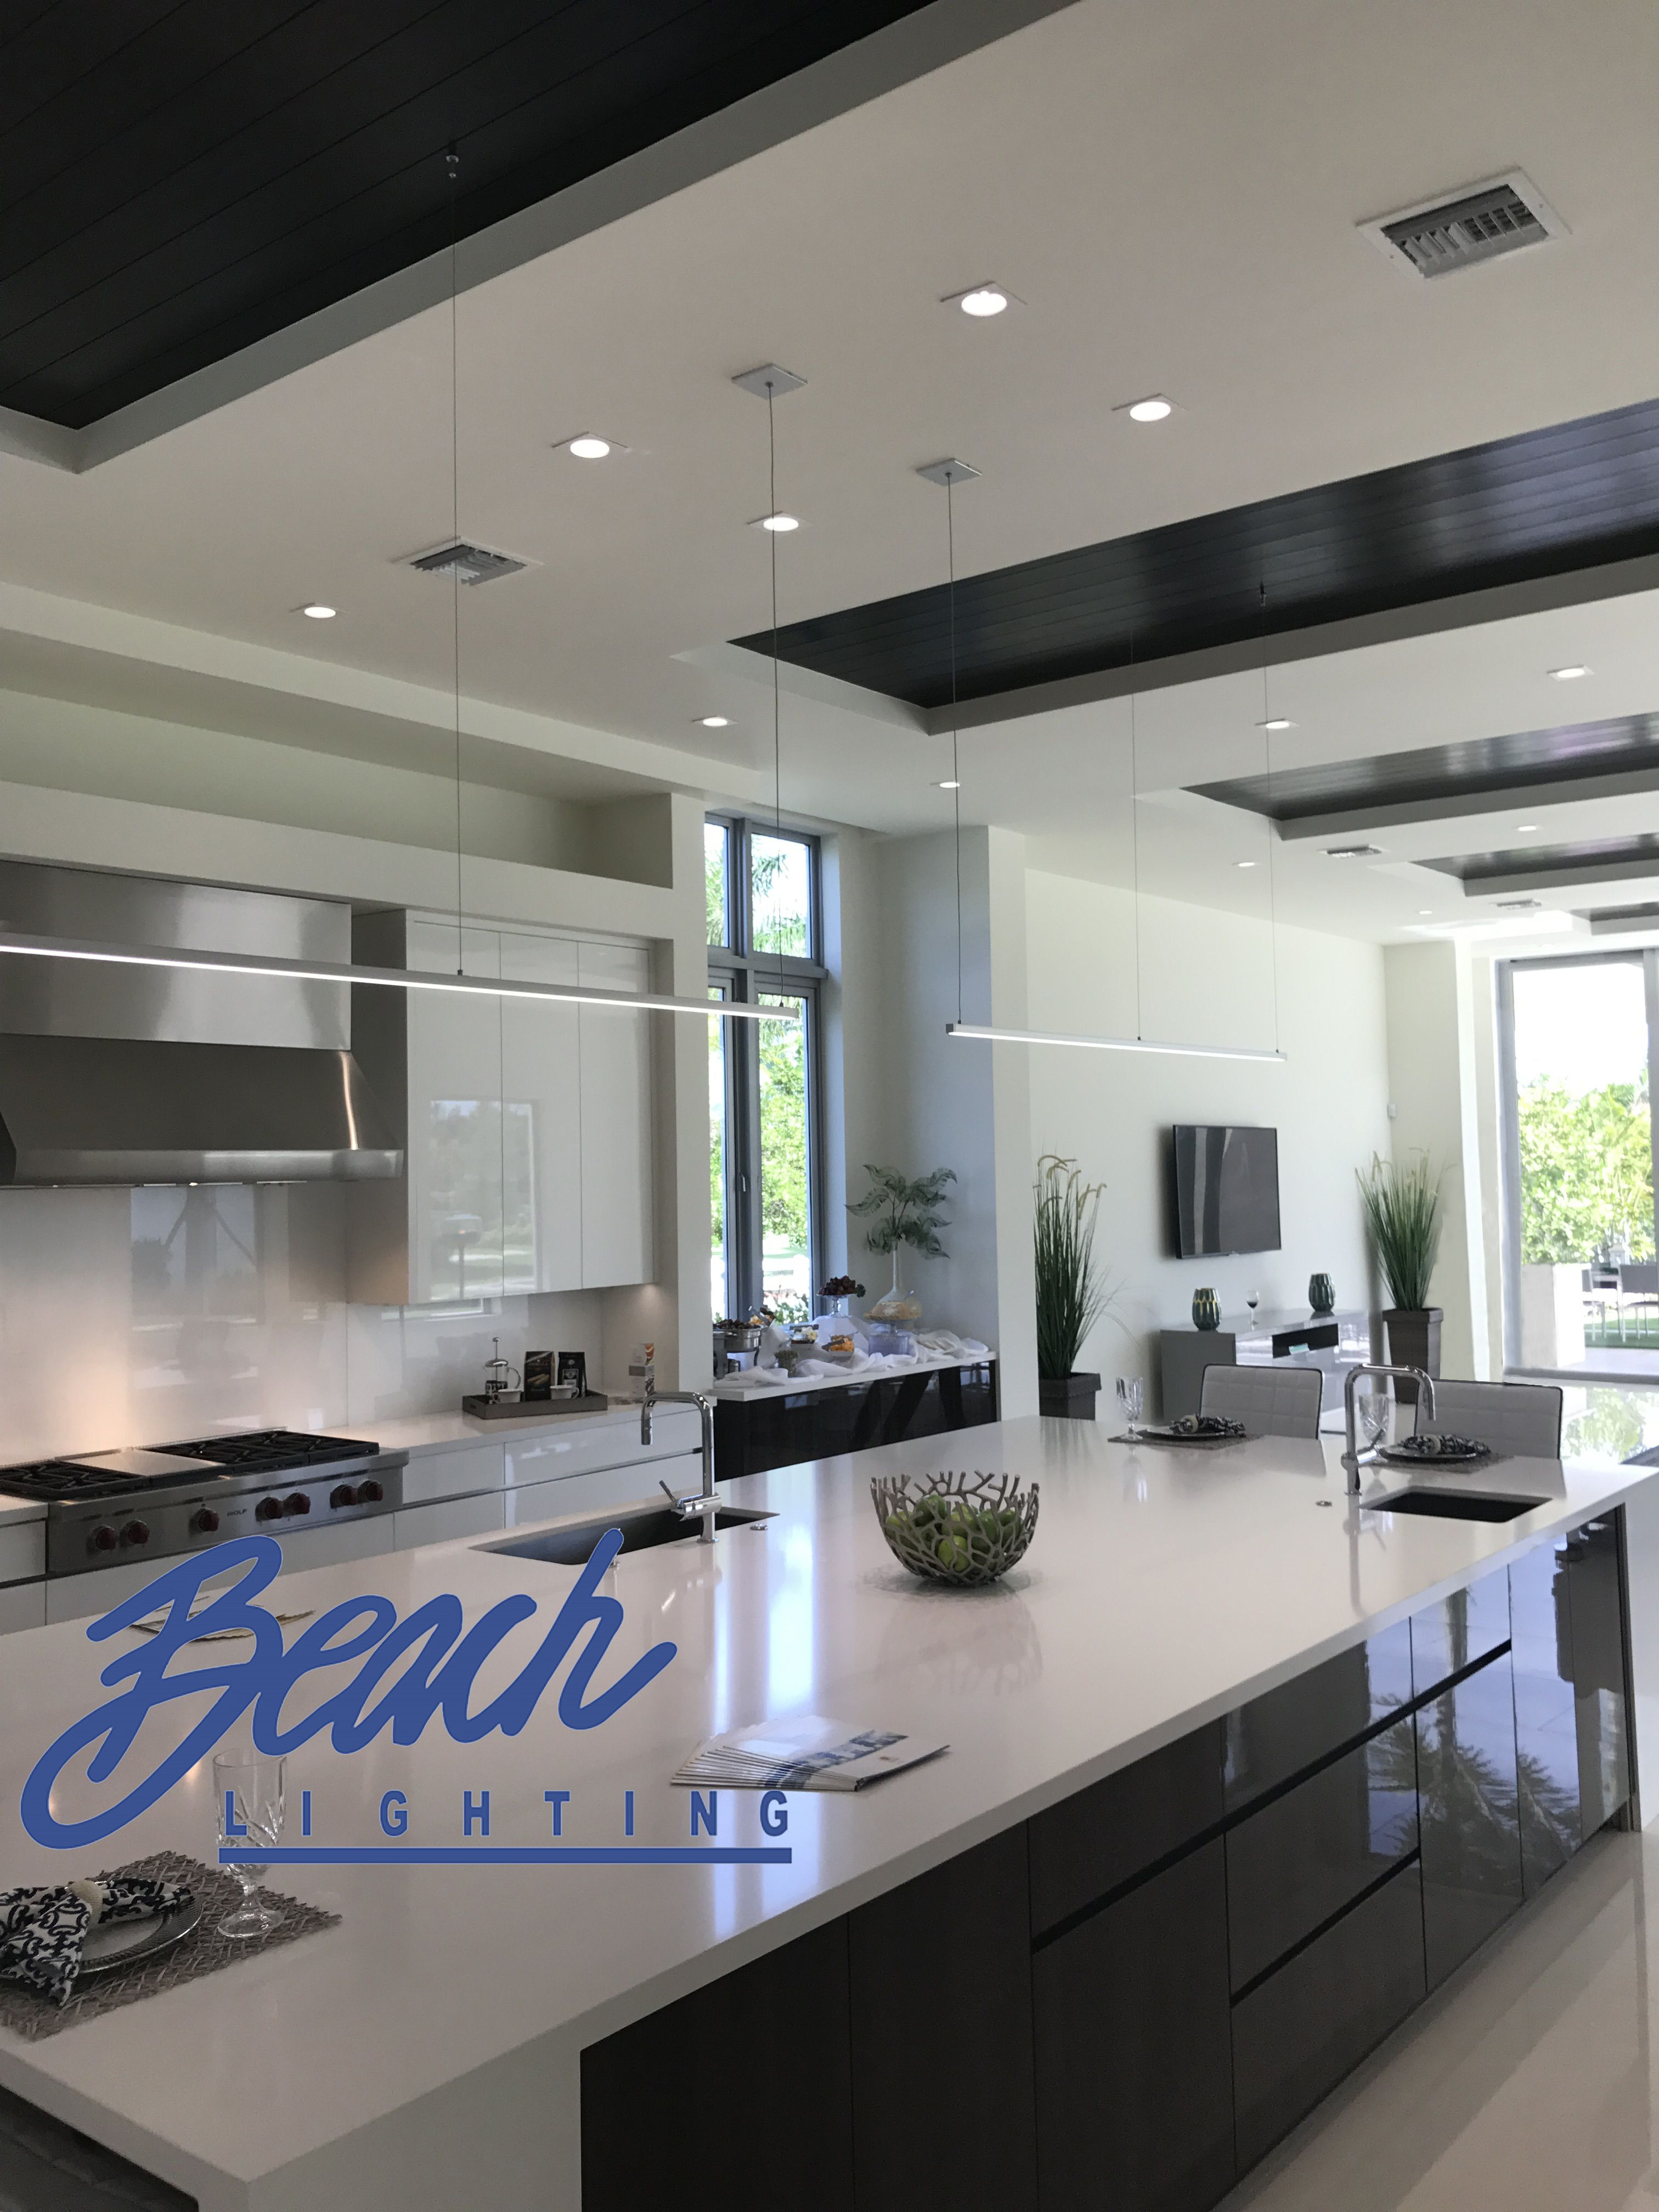 What A Beautiful Kitchen Done By Beach Lighting These Are 4 Inch Recessed Lights You Can Find Them On Our Website Under R4 593mw